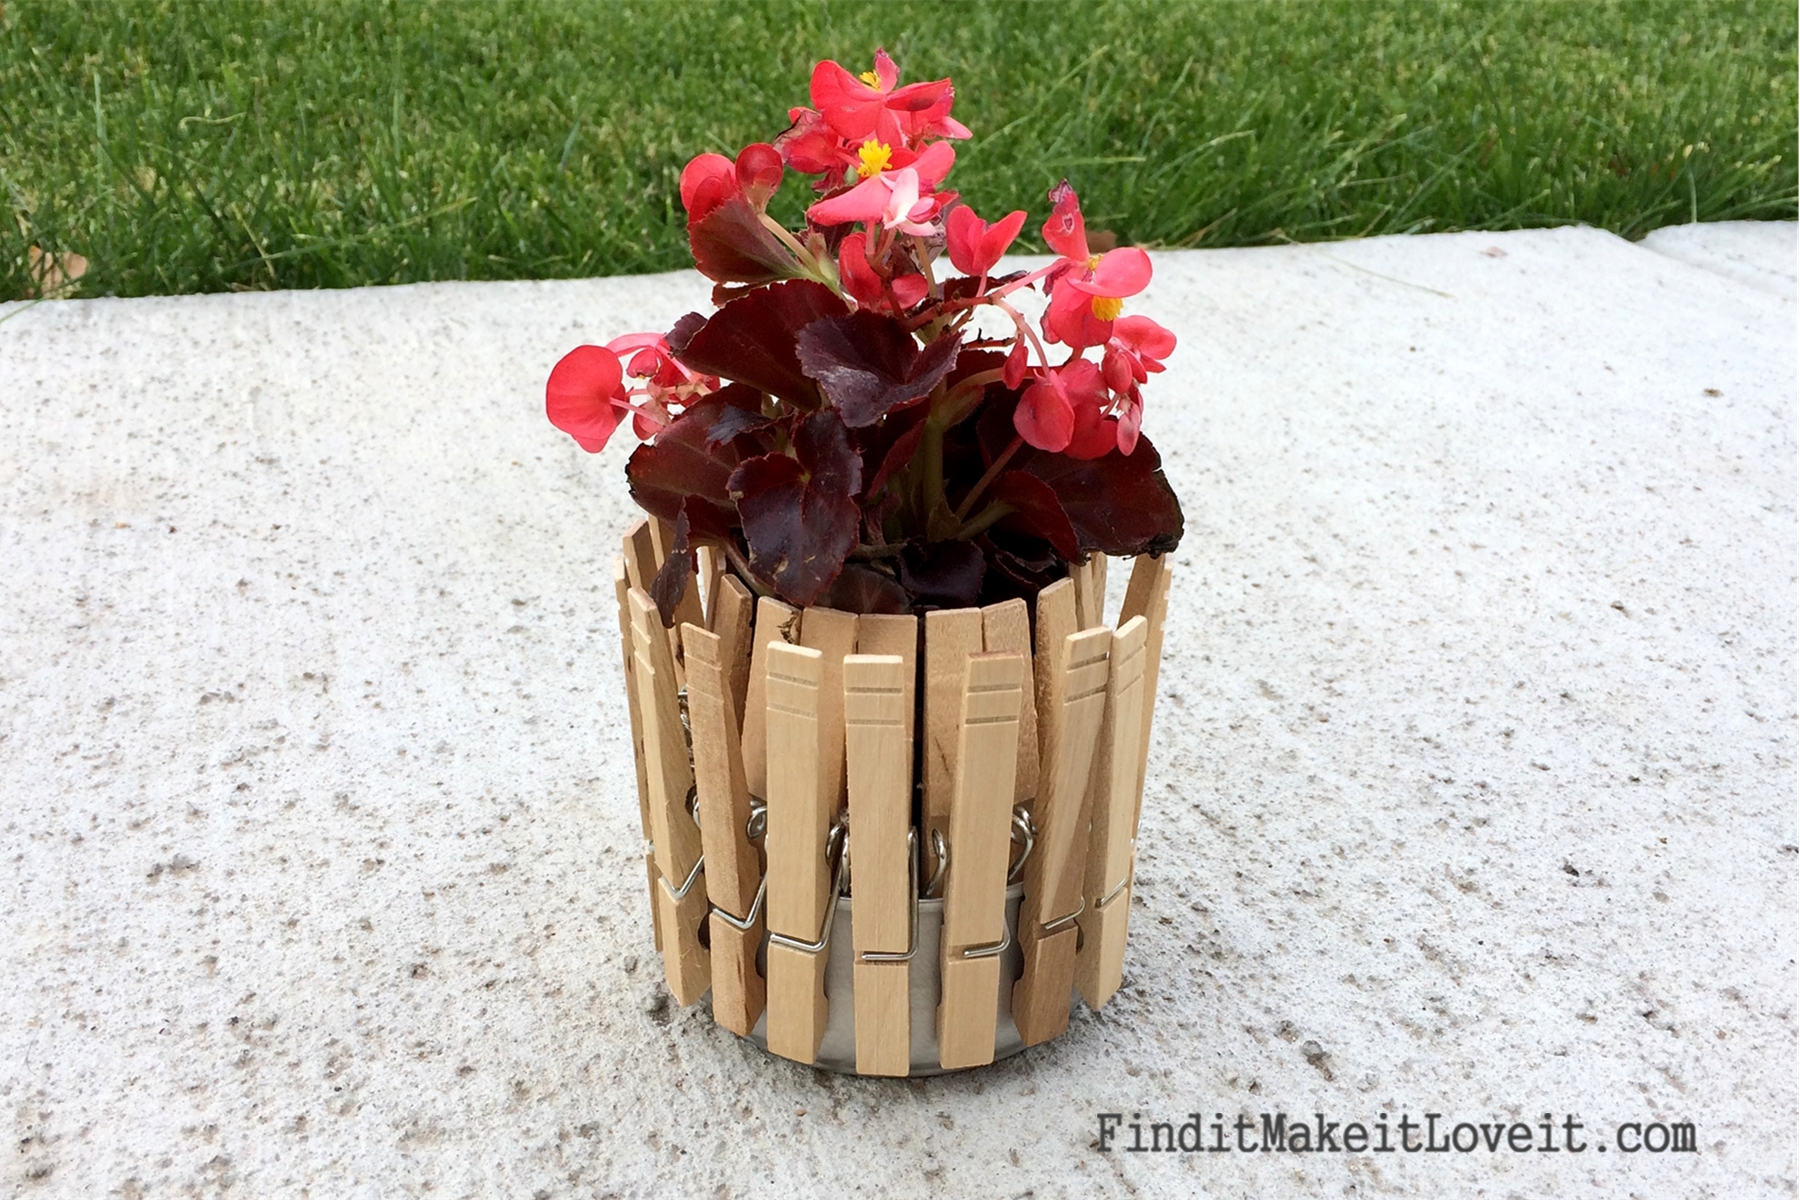 creative plant pots fresh living 8 find it make it